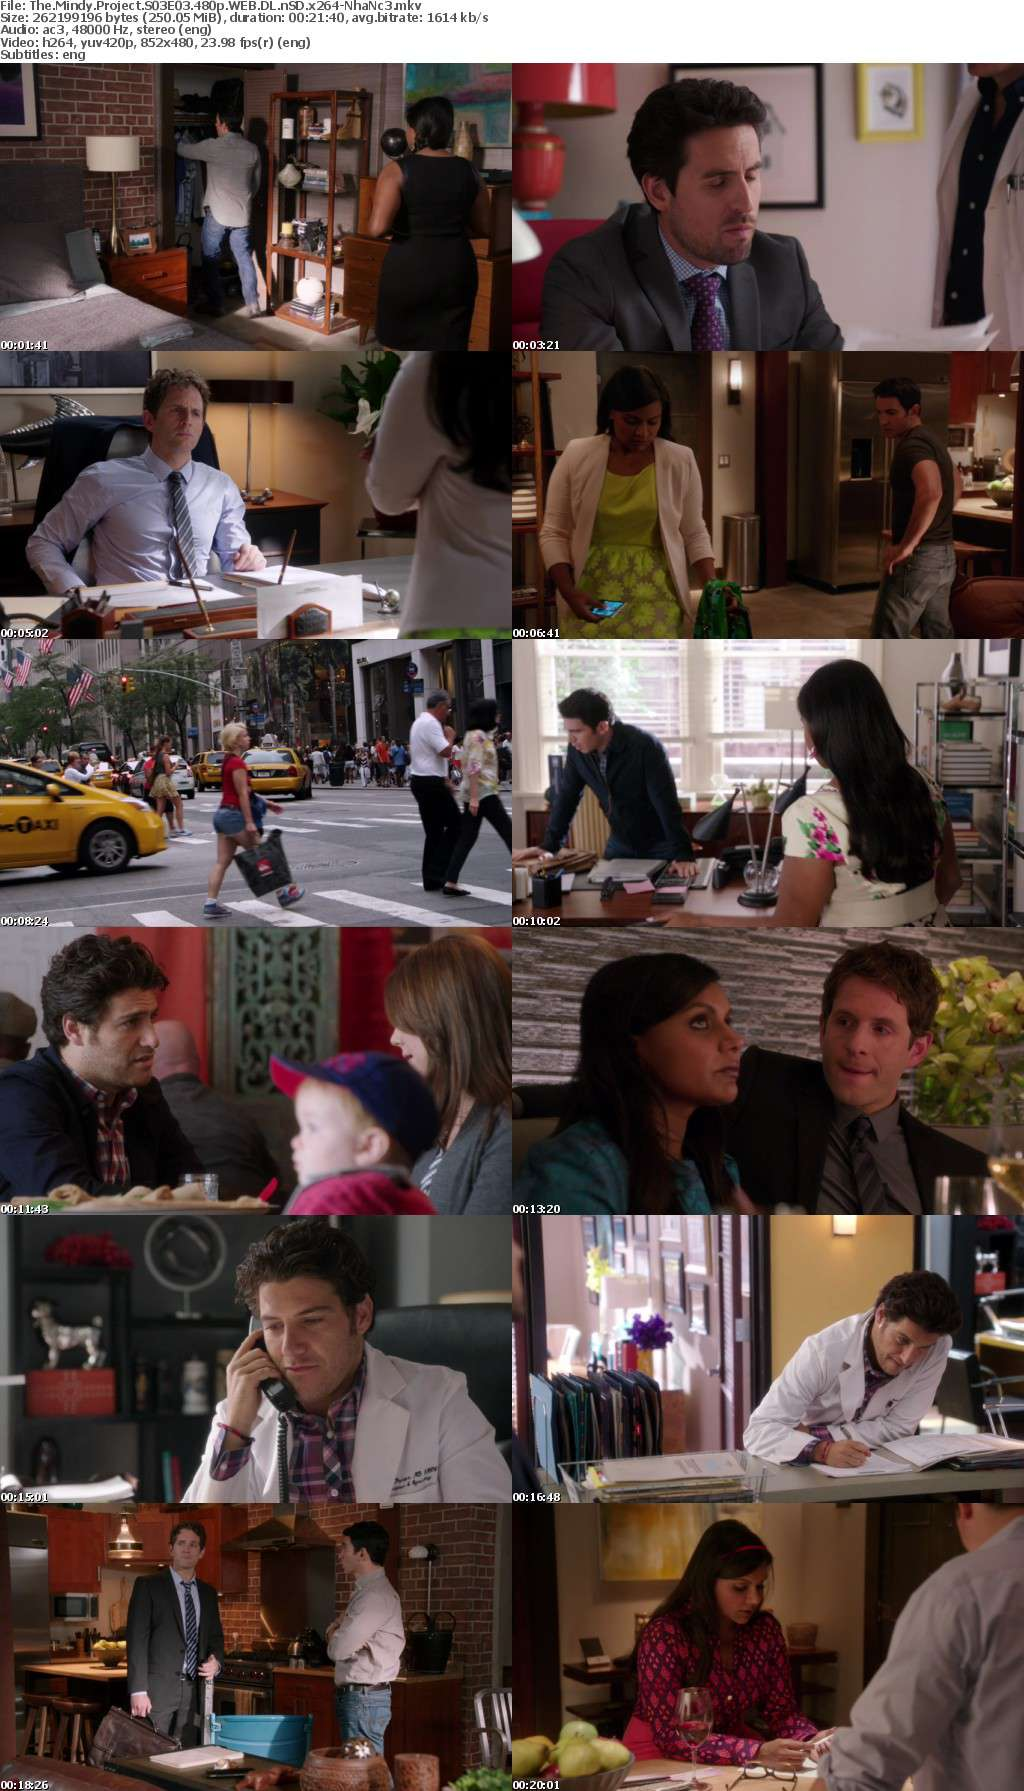 The Mindy Project S01-S04 480p WEB DL nSD x264-NhaNc3